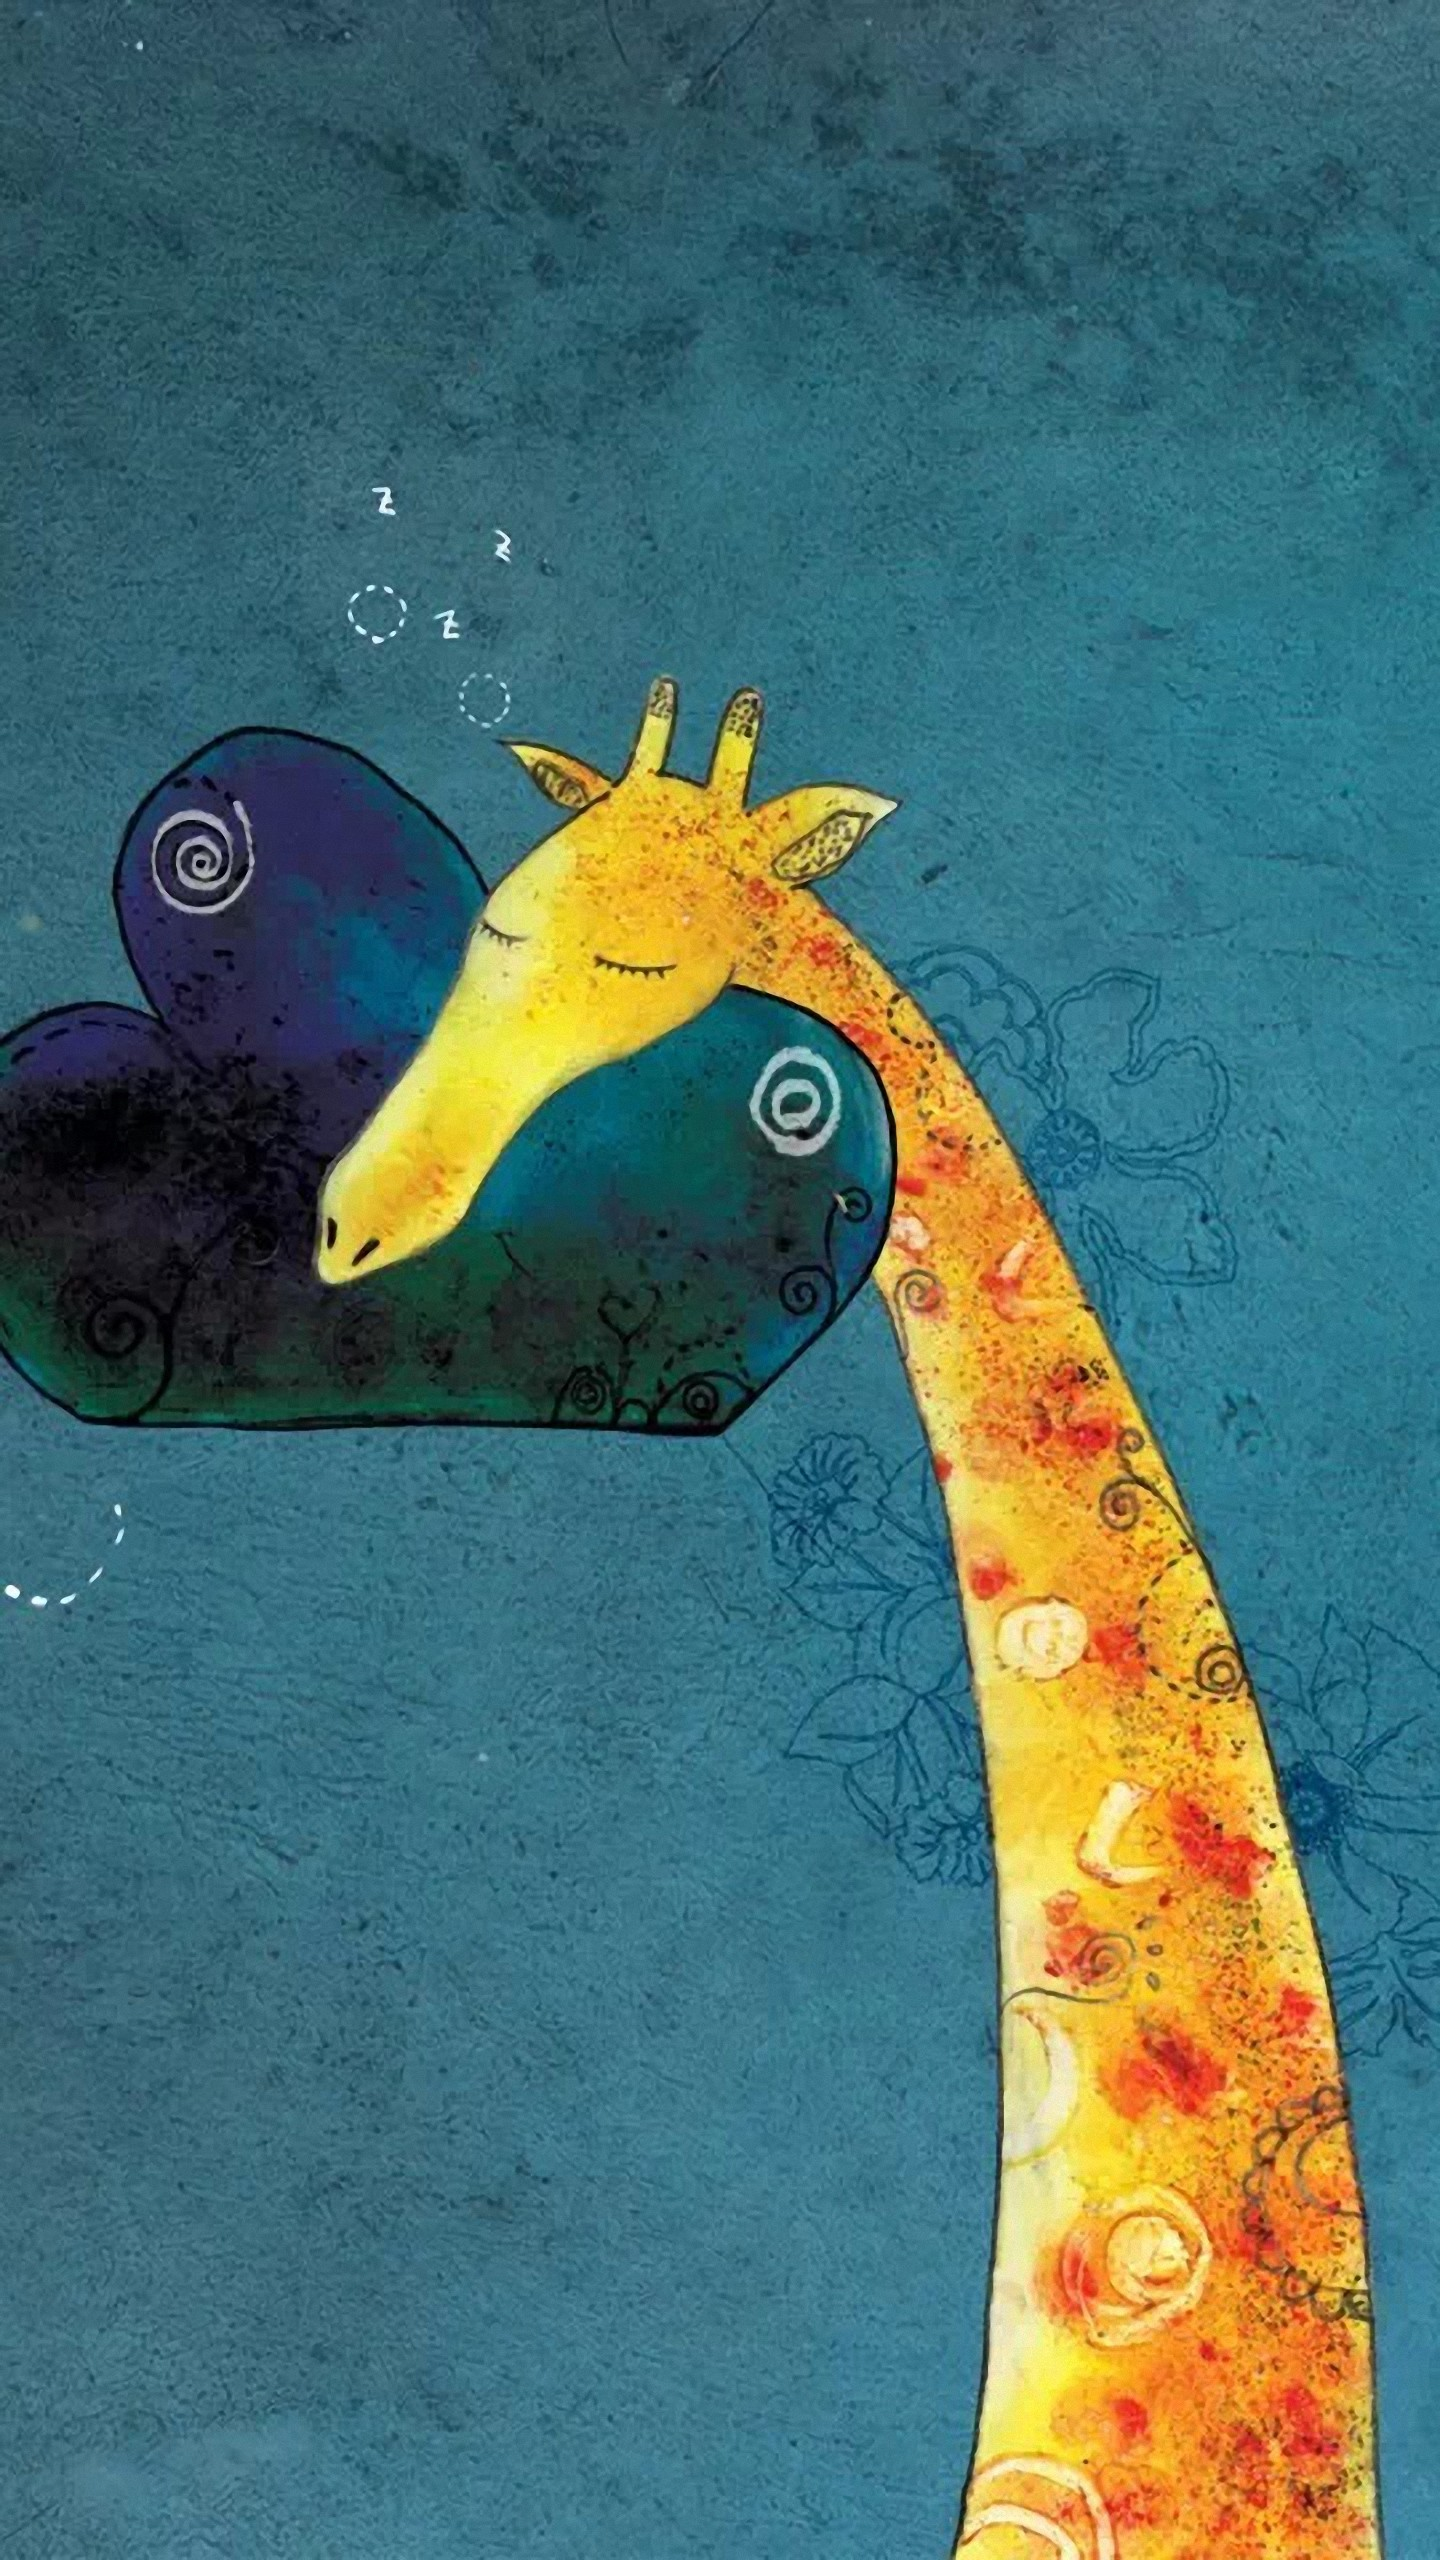 1440x2560 Customize your Galaxy with this high definition Giraffe Pillow wallpaper  from HD Phone Wallpapers!